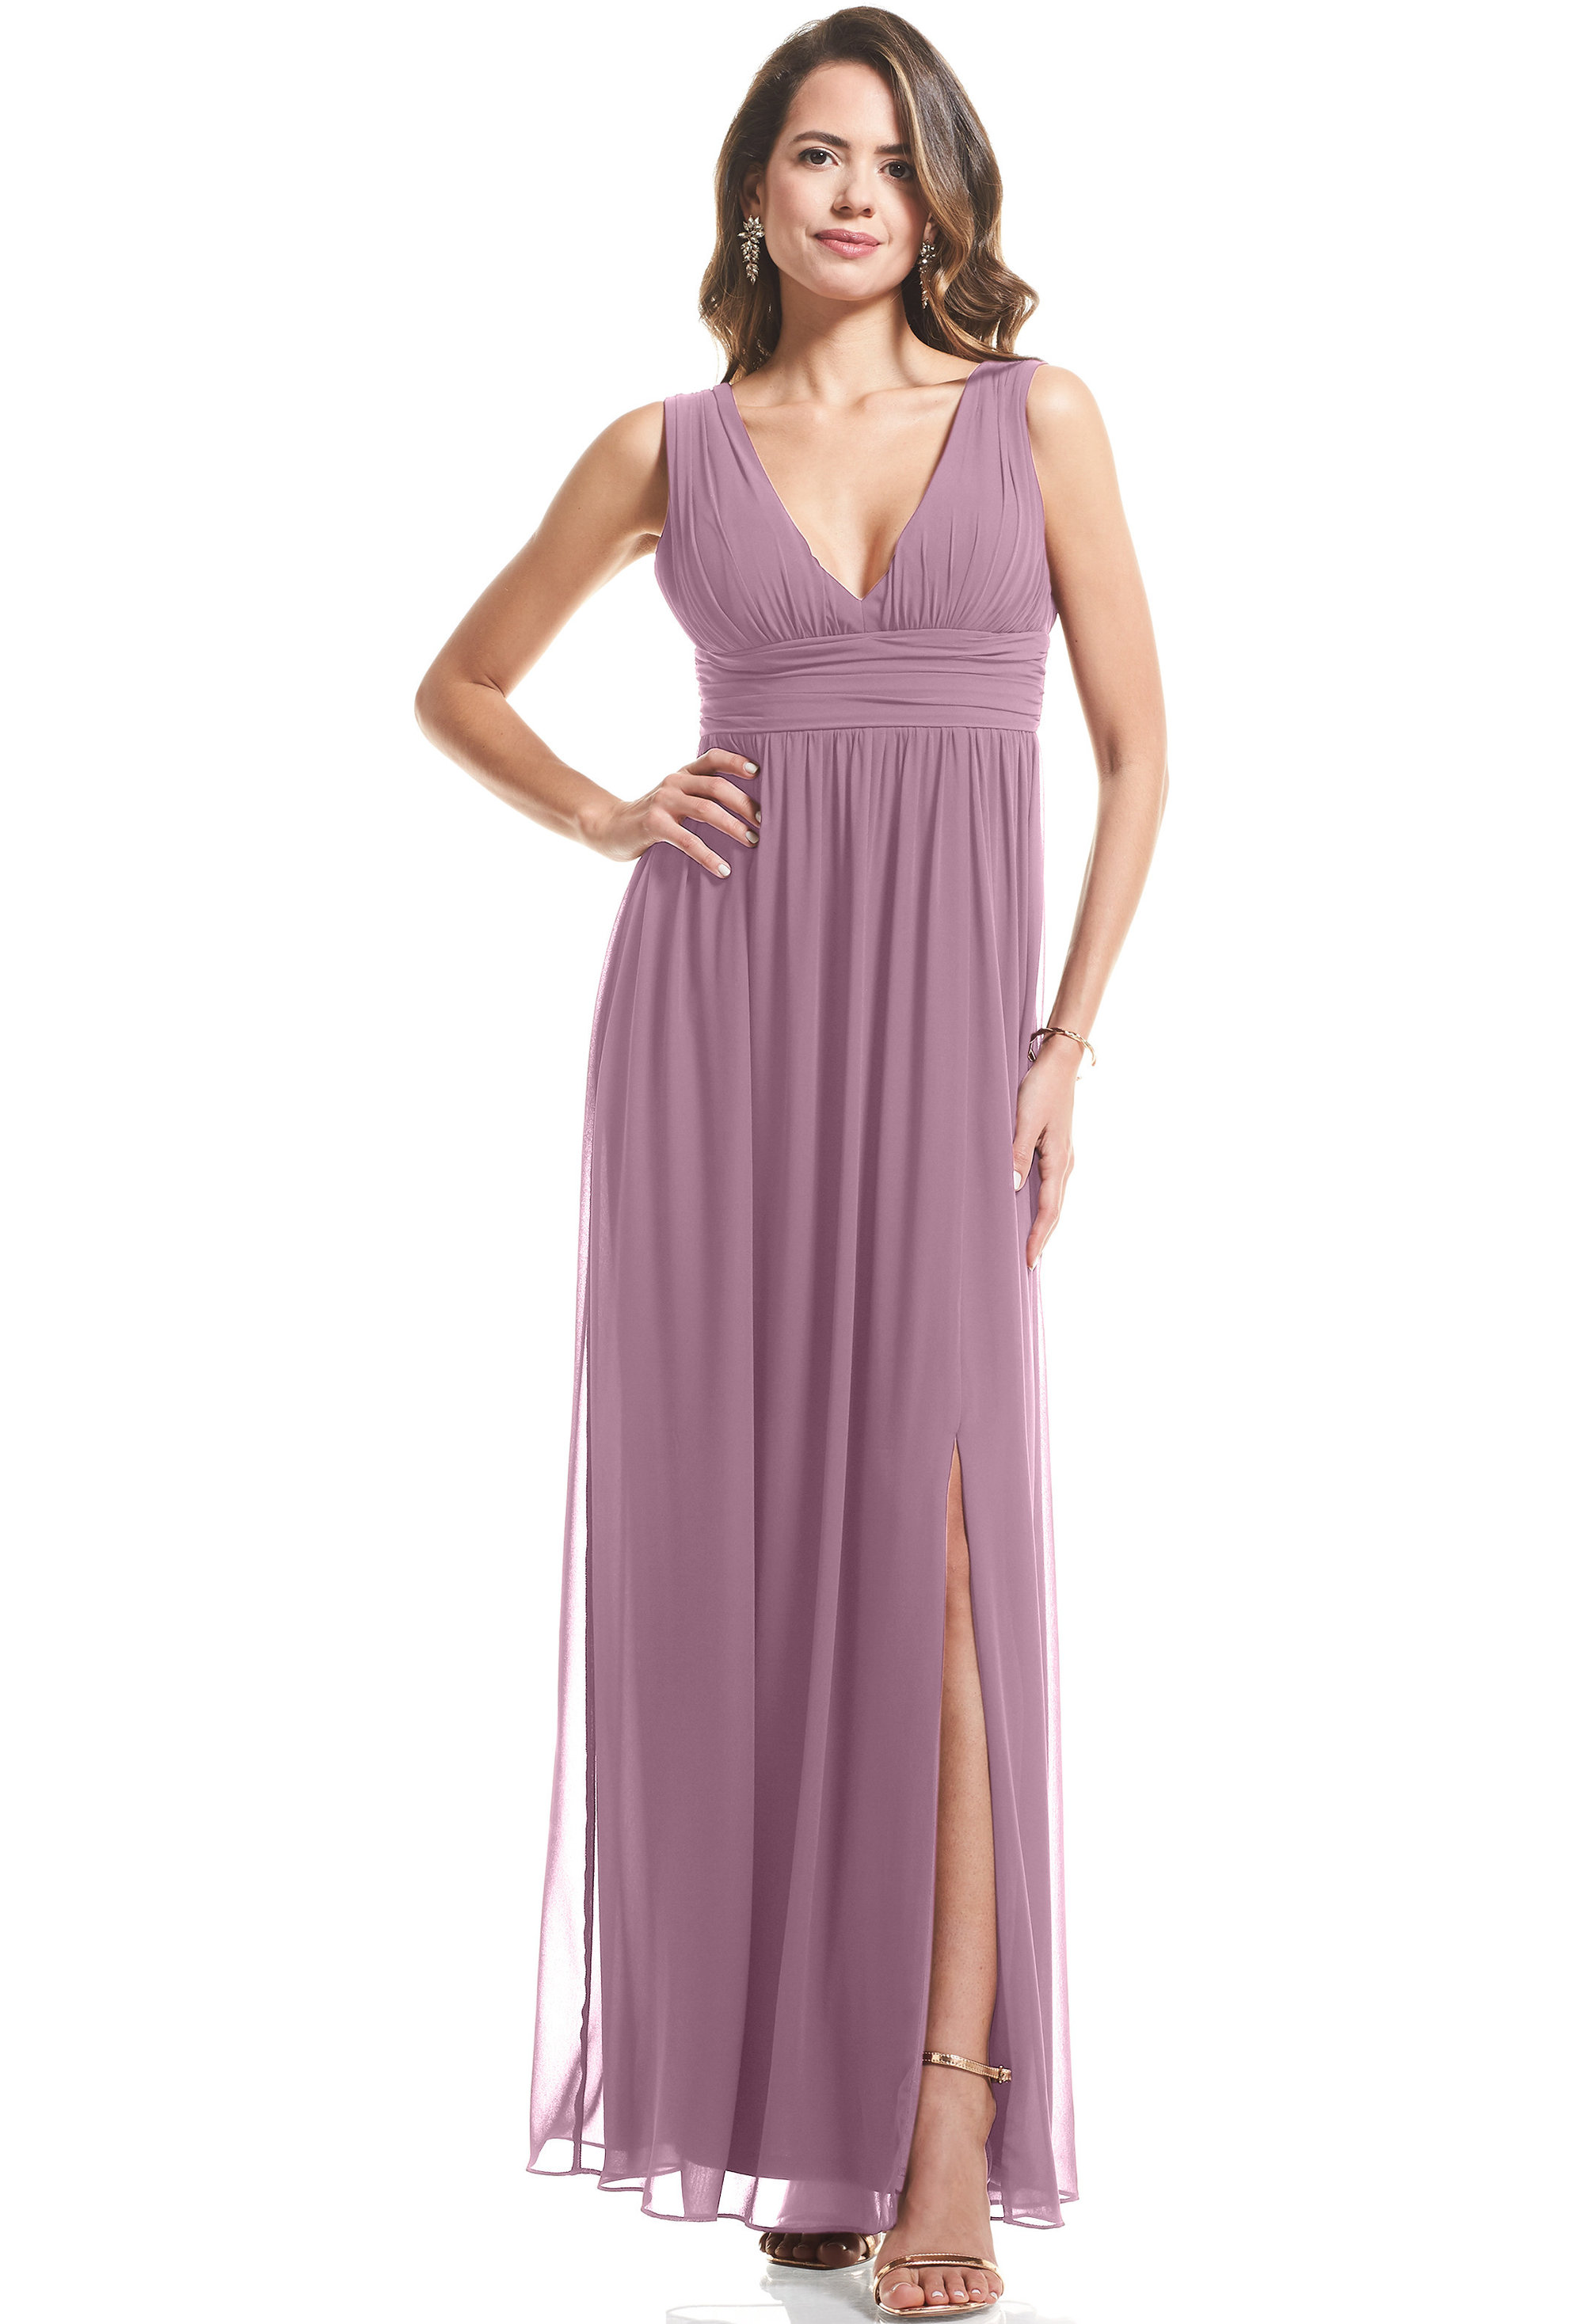 Bill Levkoff WISTERIA Chiffon V-neck A-Line gown, $89.00 Front